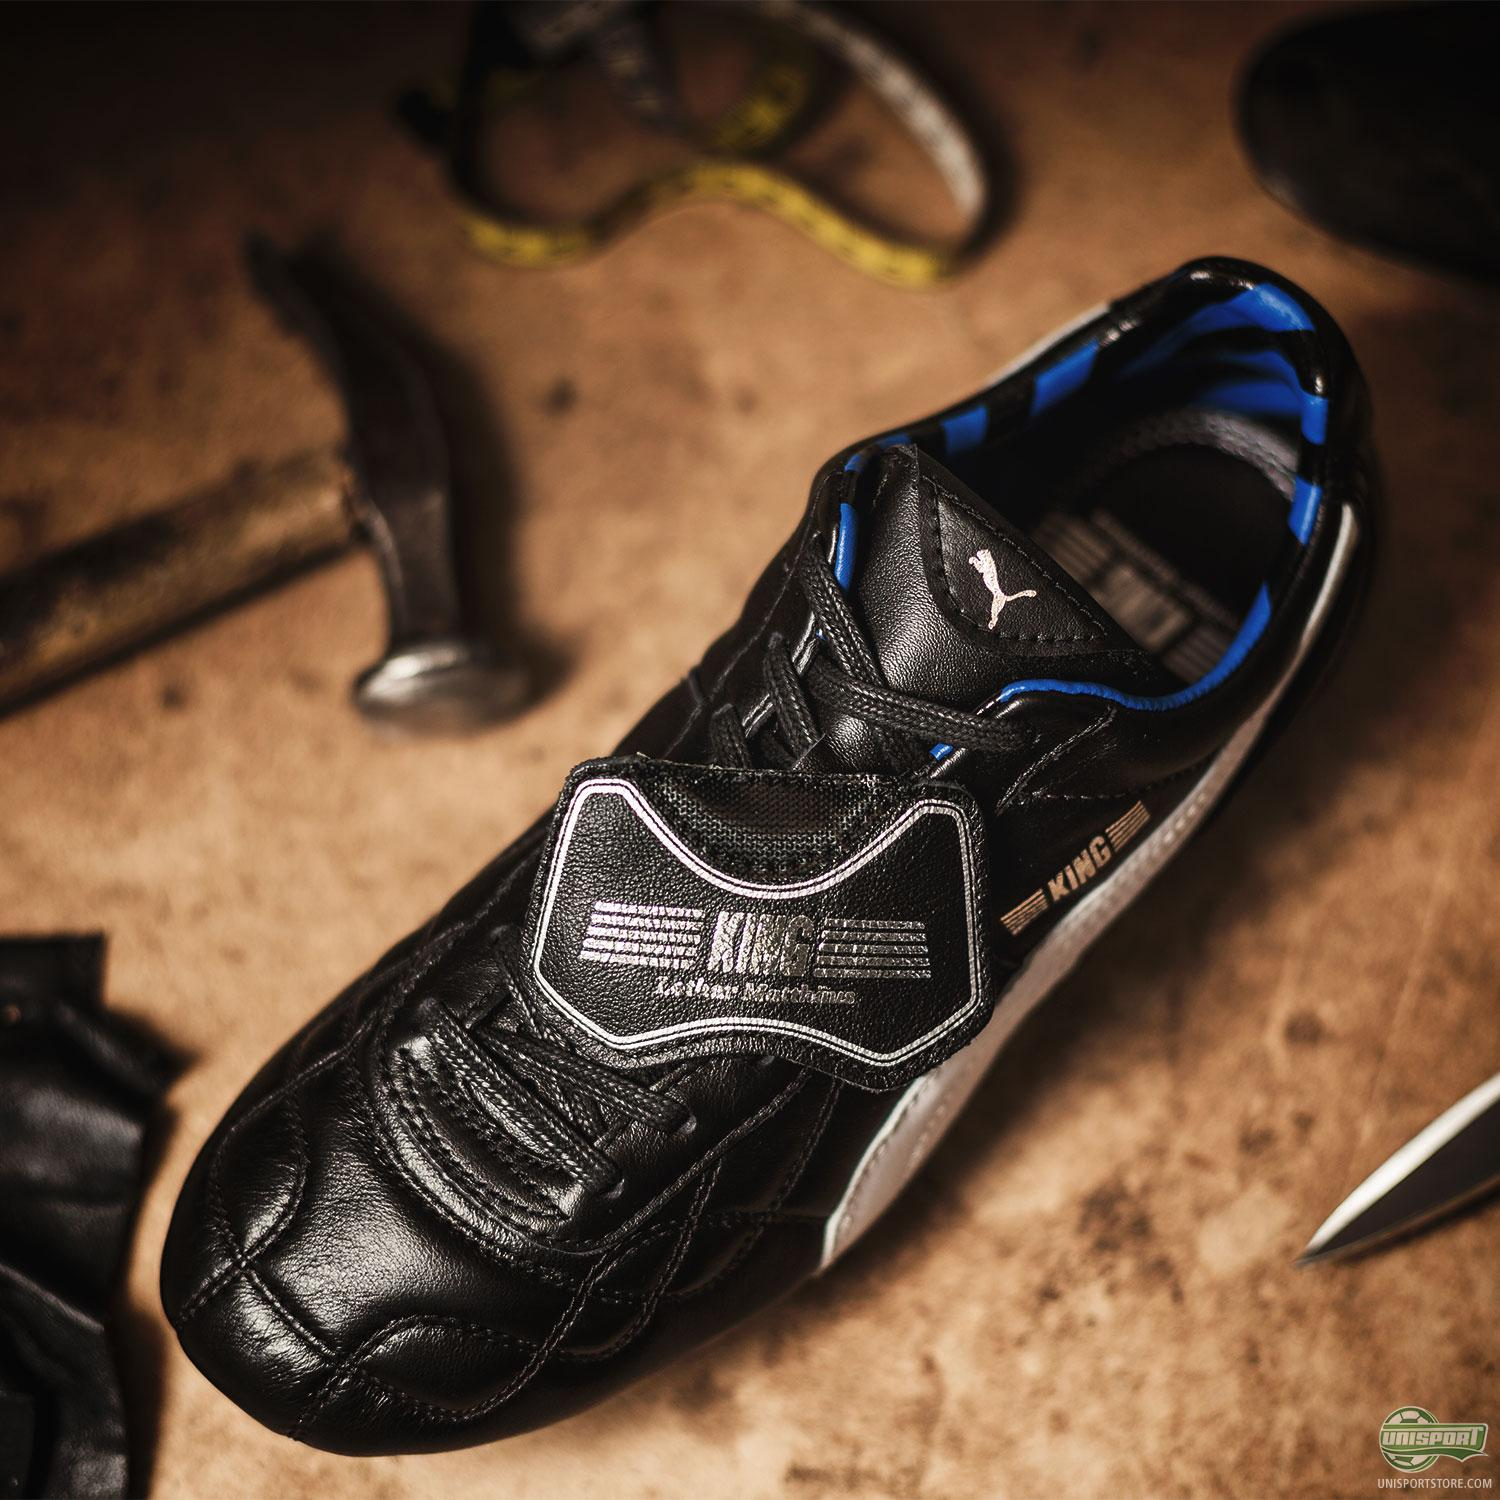 Time of the legends PUMA celebrates Lothar Matthäus with a